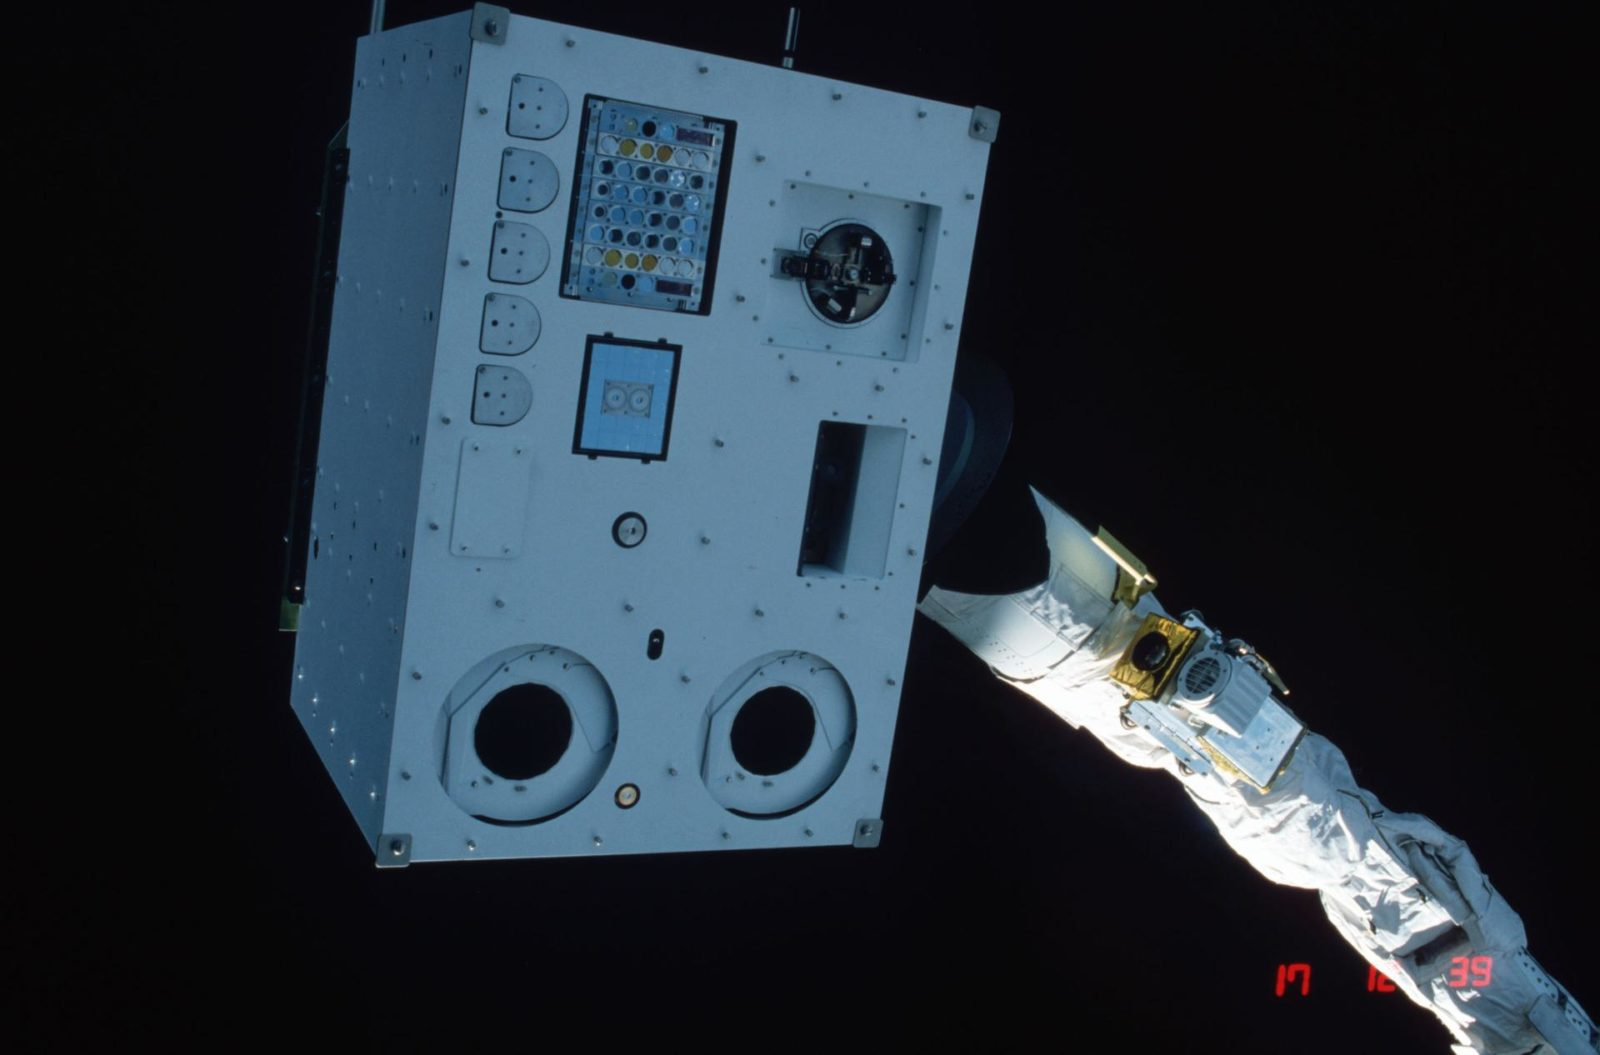 Closeups of IECM grappled by RMS and positioned above payload bay (PLB)